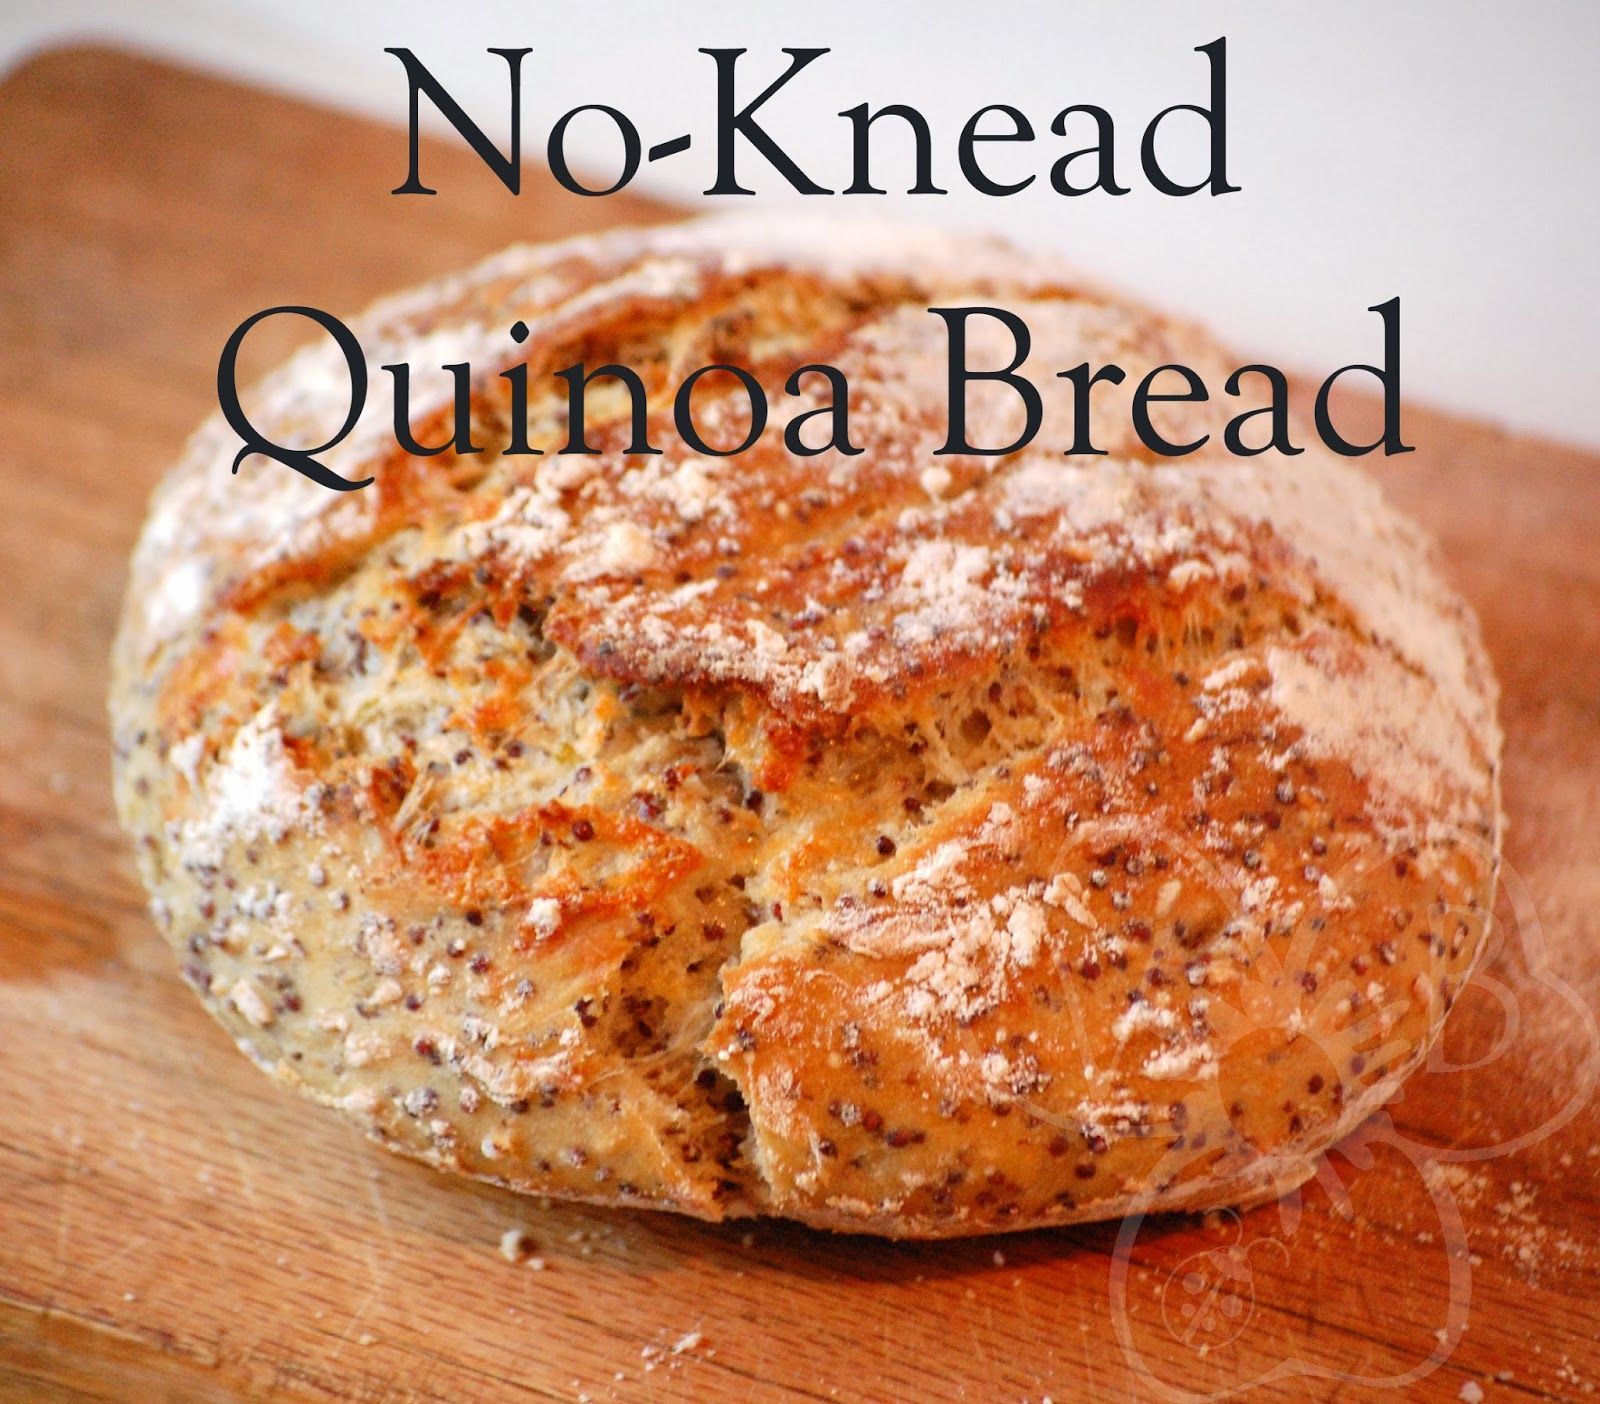 For This Recipe I Used The Artisan Free Form No Knead Bread Recipe As A Starting Point This Will Yi Artisan Bread Recipes Bread Recipes Homemade Quinoa Bread